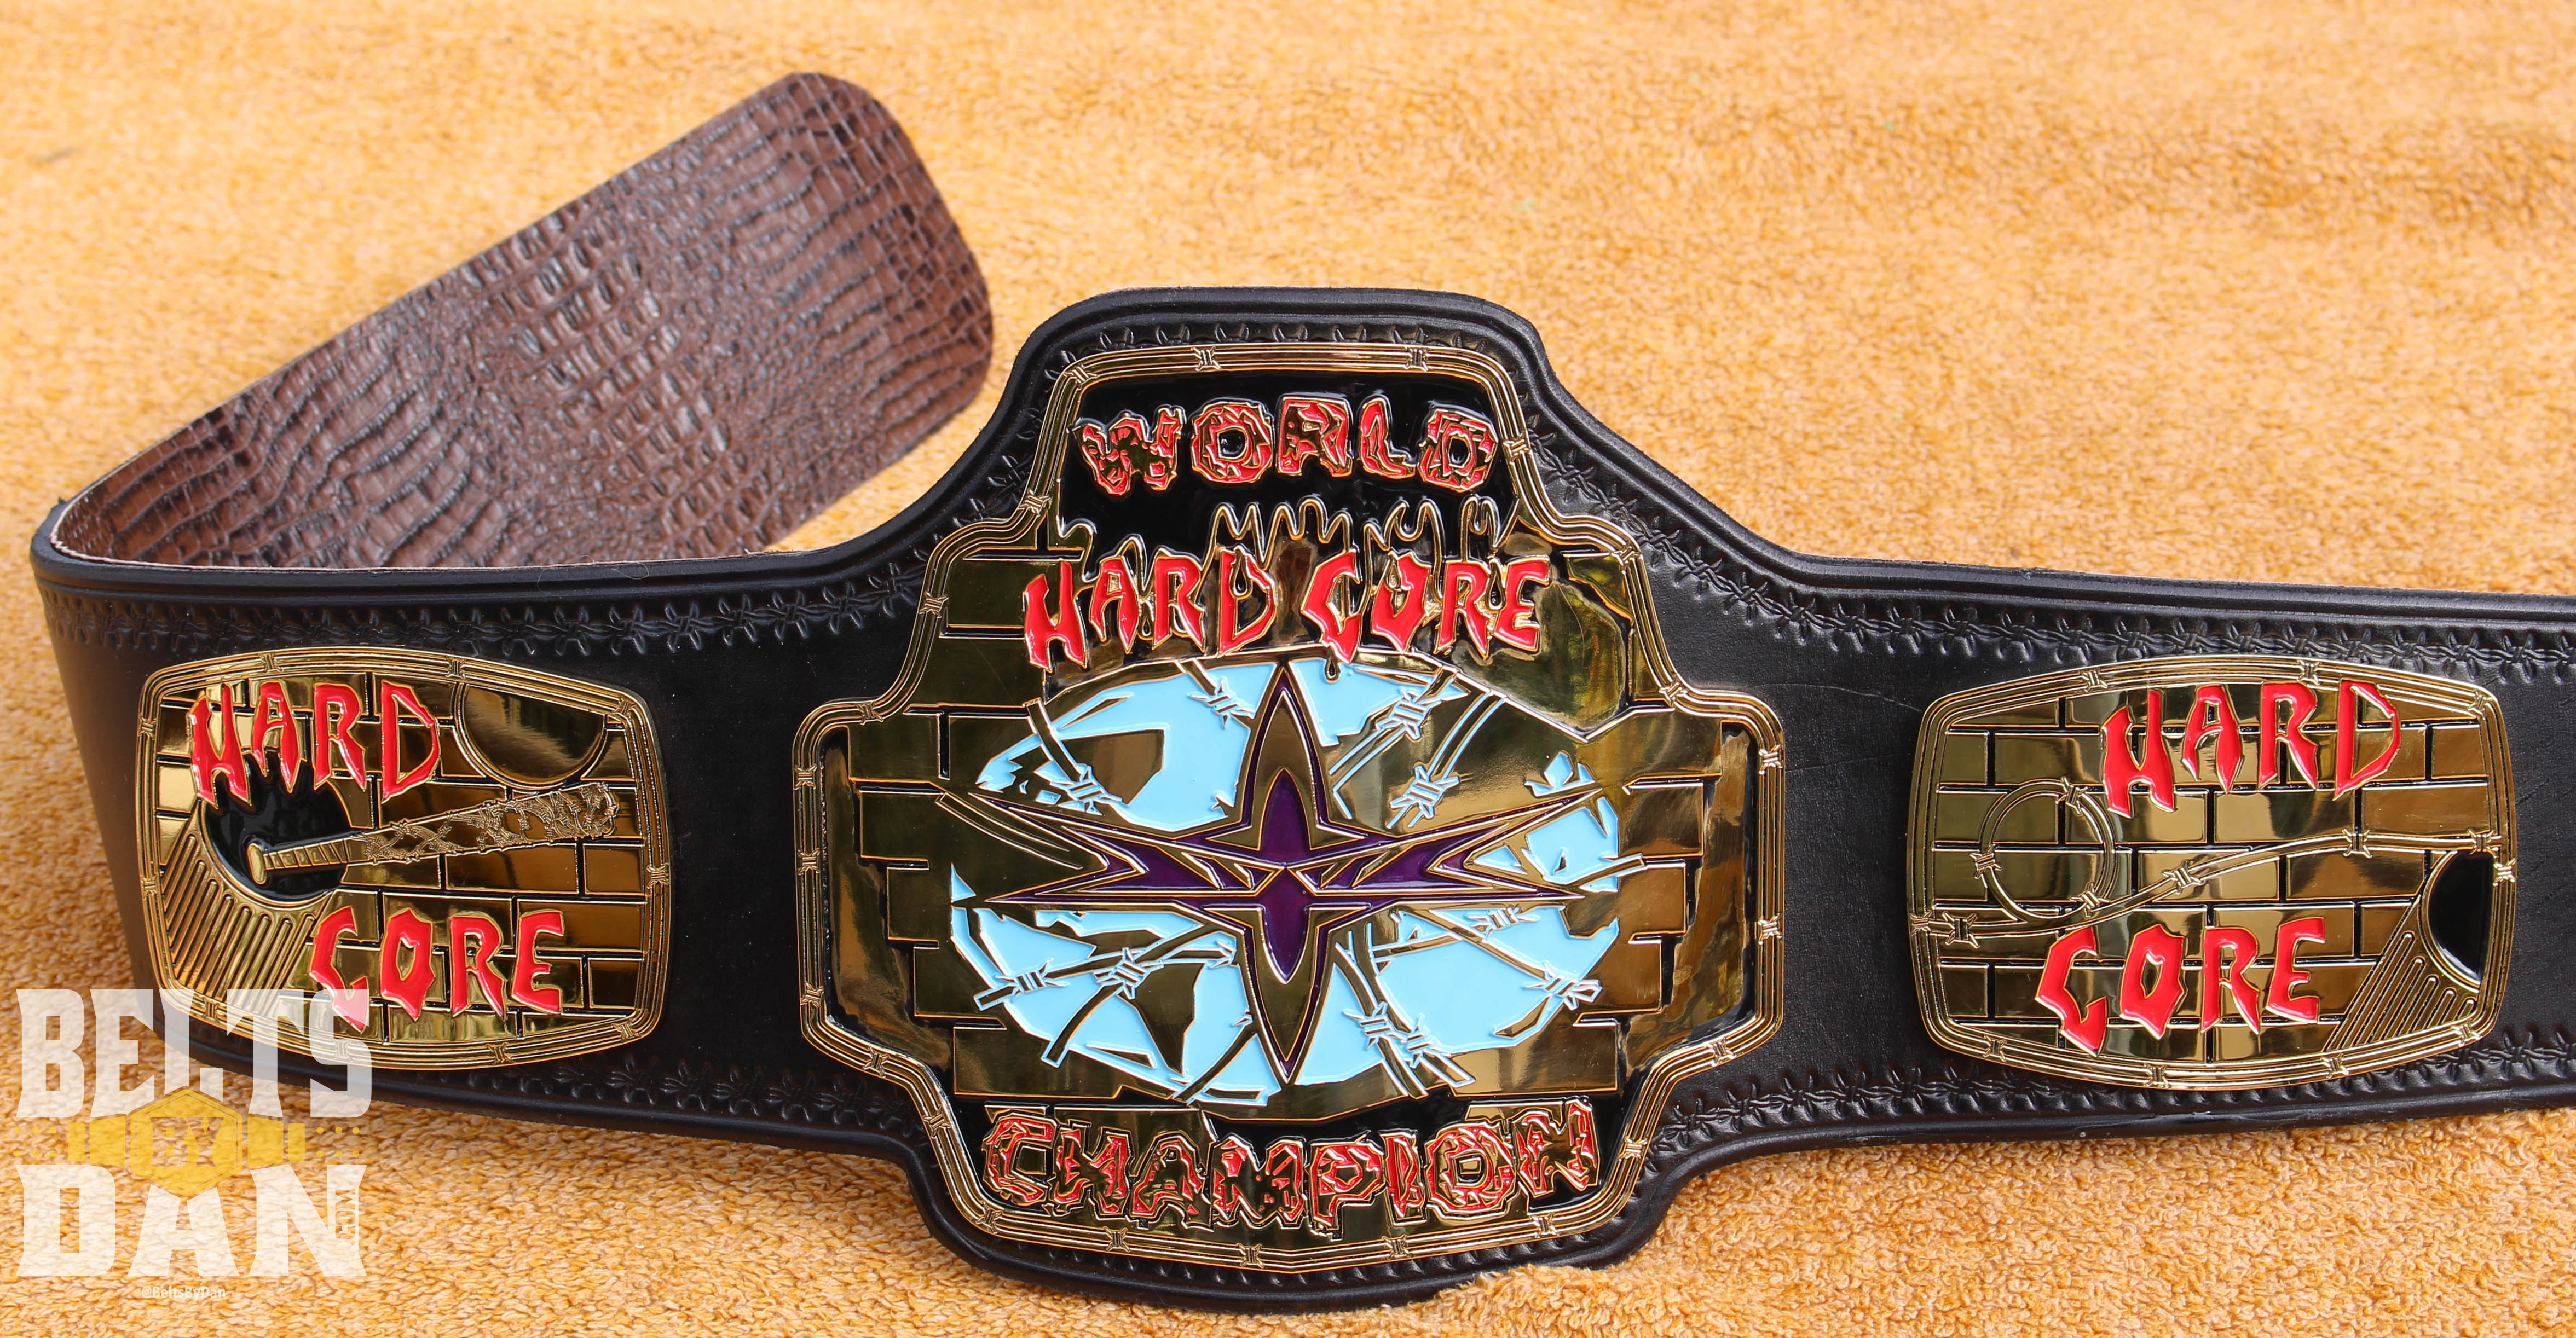 Wcw hardcore championship clipart clip royalty free library WoW Hardcore Championship clip royalty free library